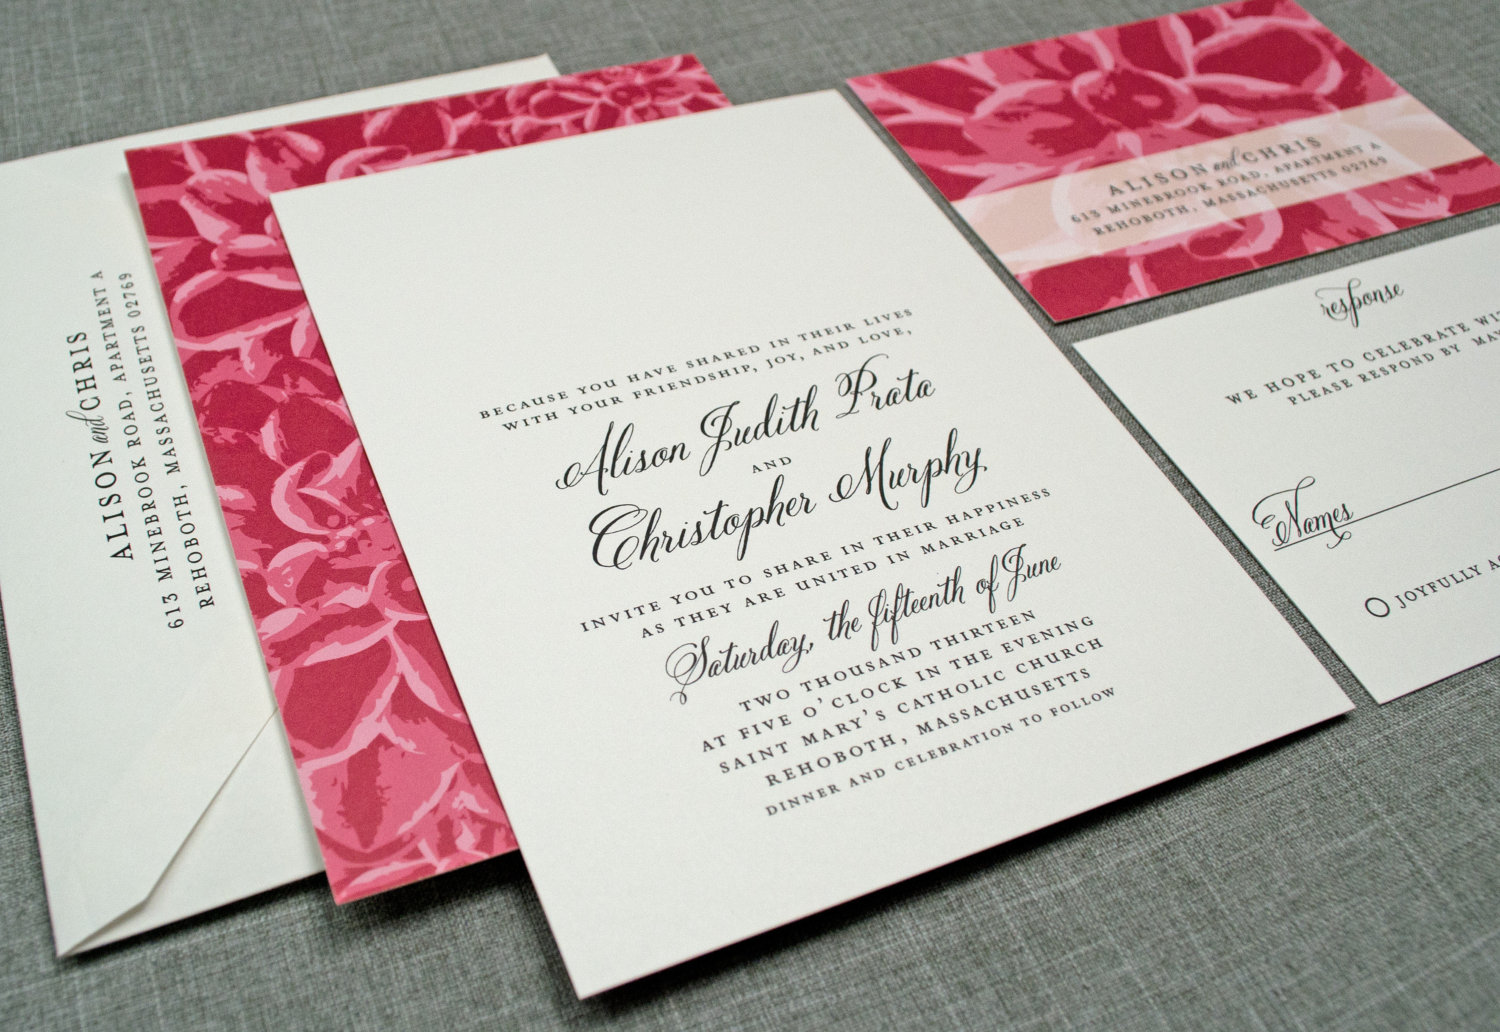 Unique Wedding Invitation Wording Samples is good invitations example